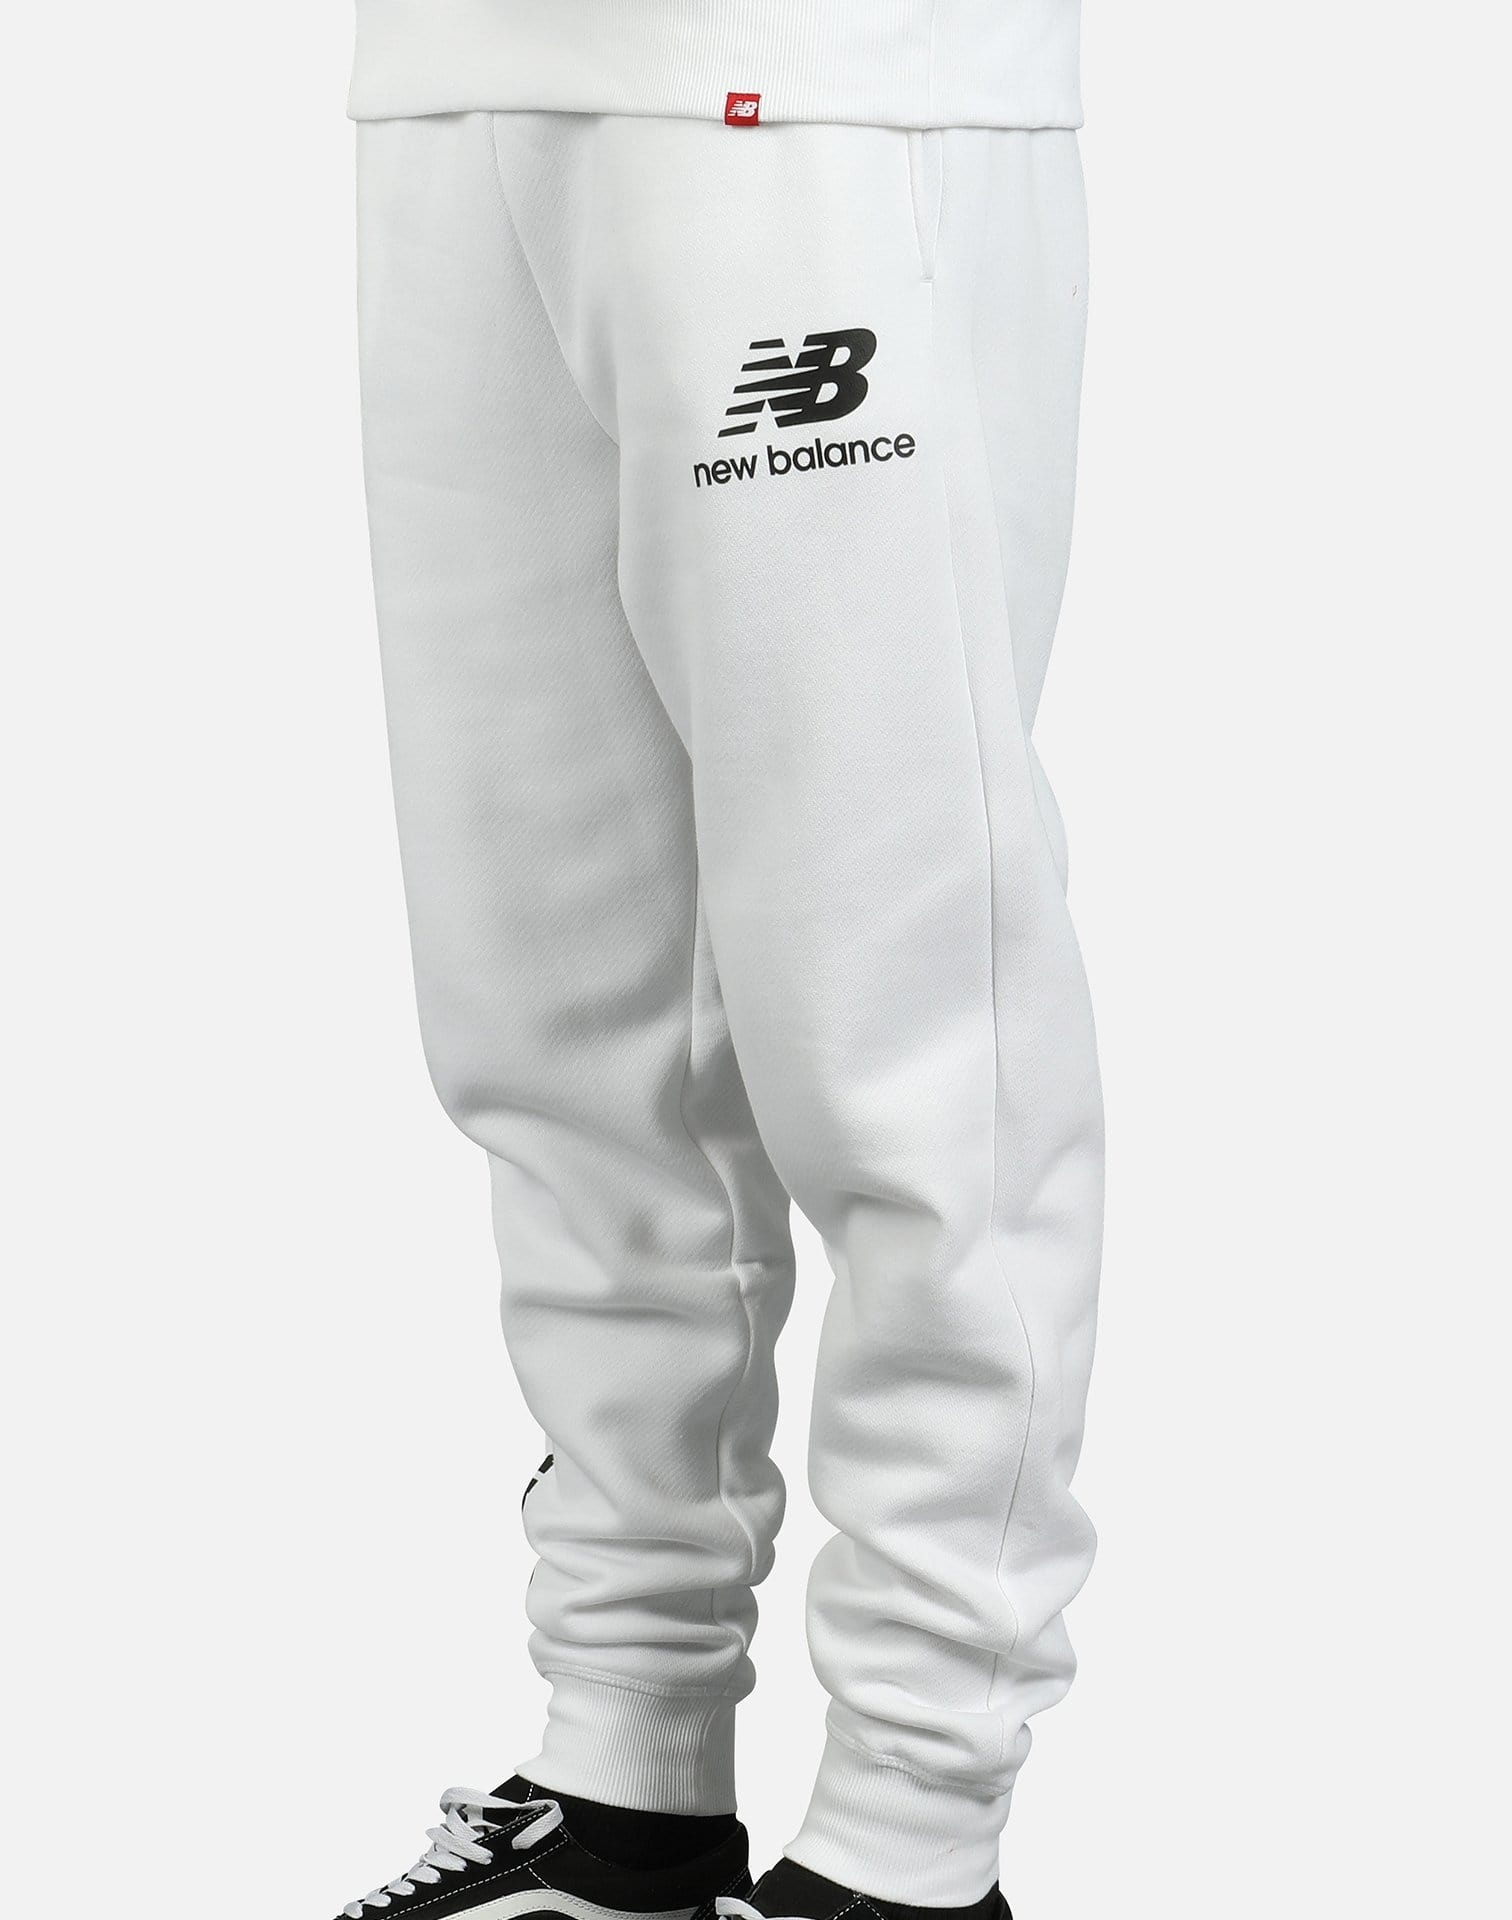 vNew Balance Men's Essentials NB Logo Sweatpants